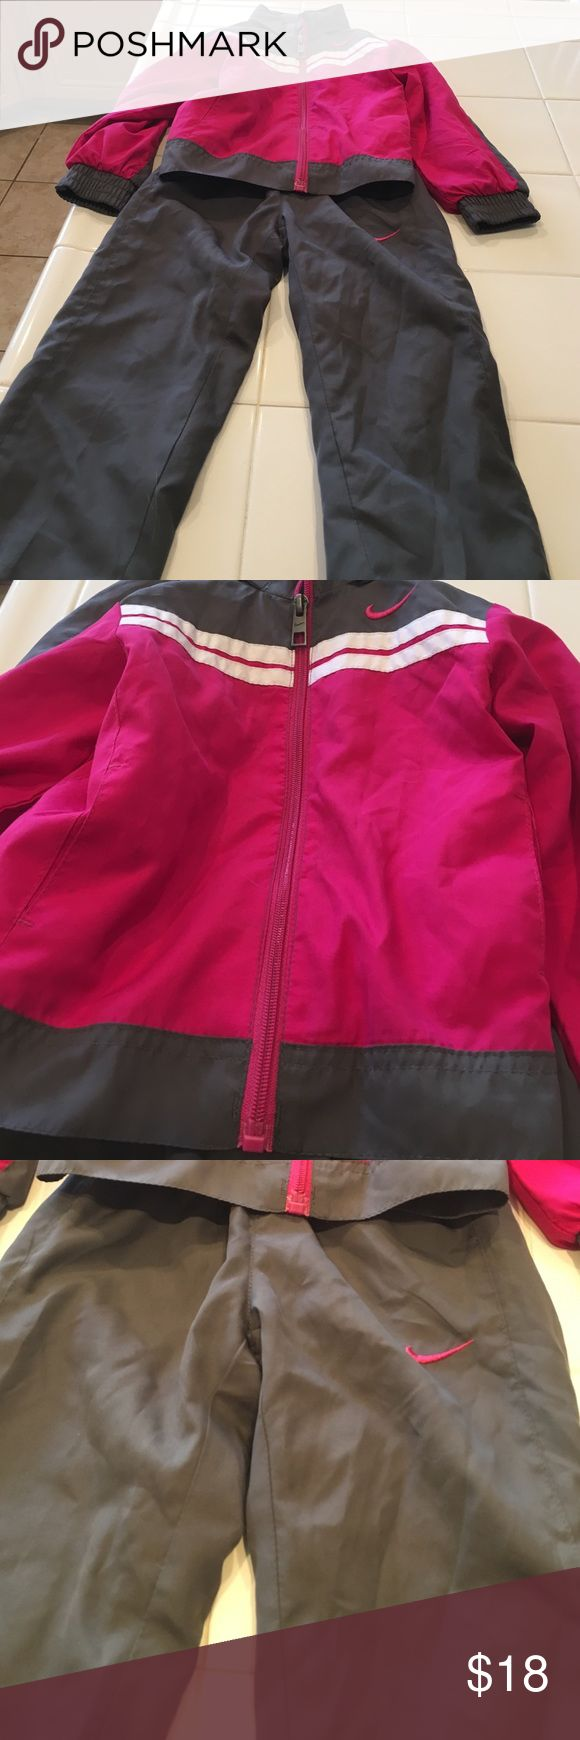 Nike Jogging Suit Matching jacket and pants. Wore once. Nike Matching Sets